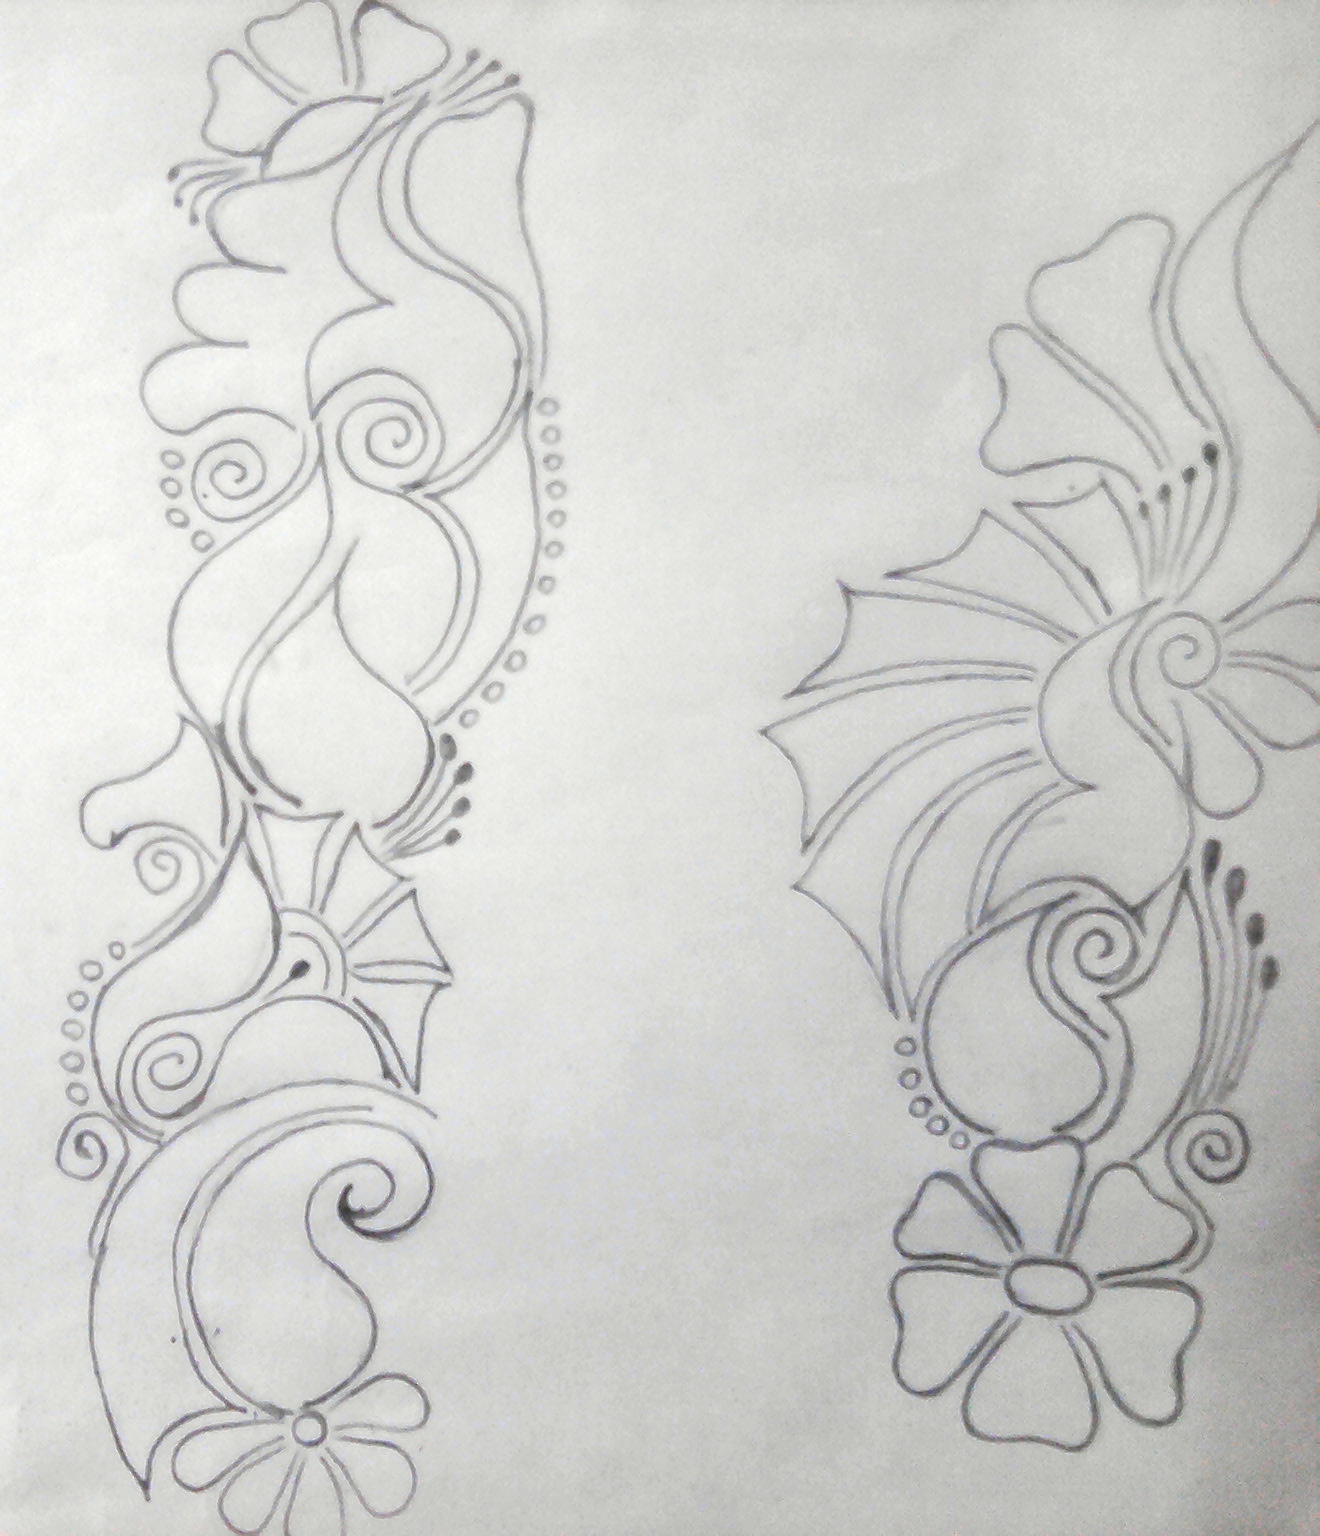 how to draw trippy designs step by step